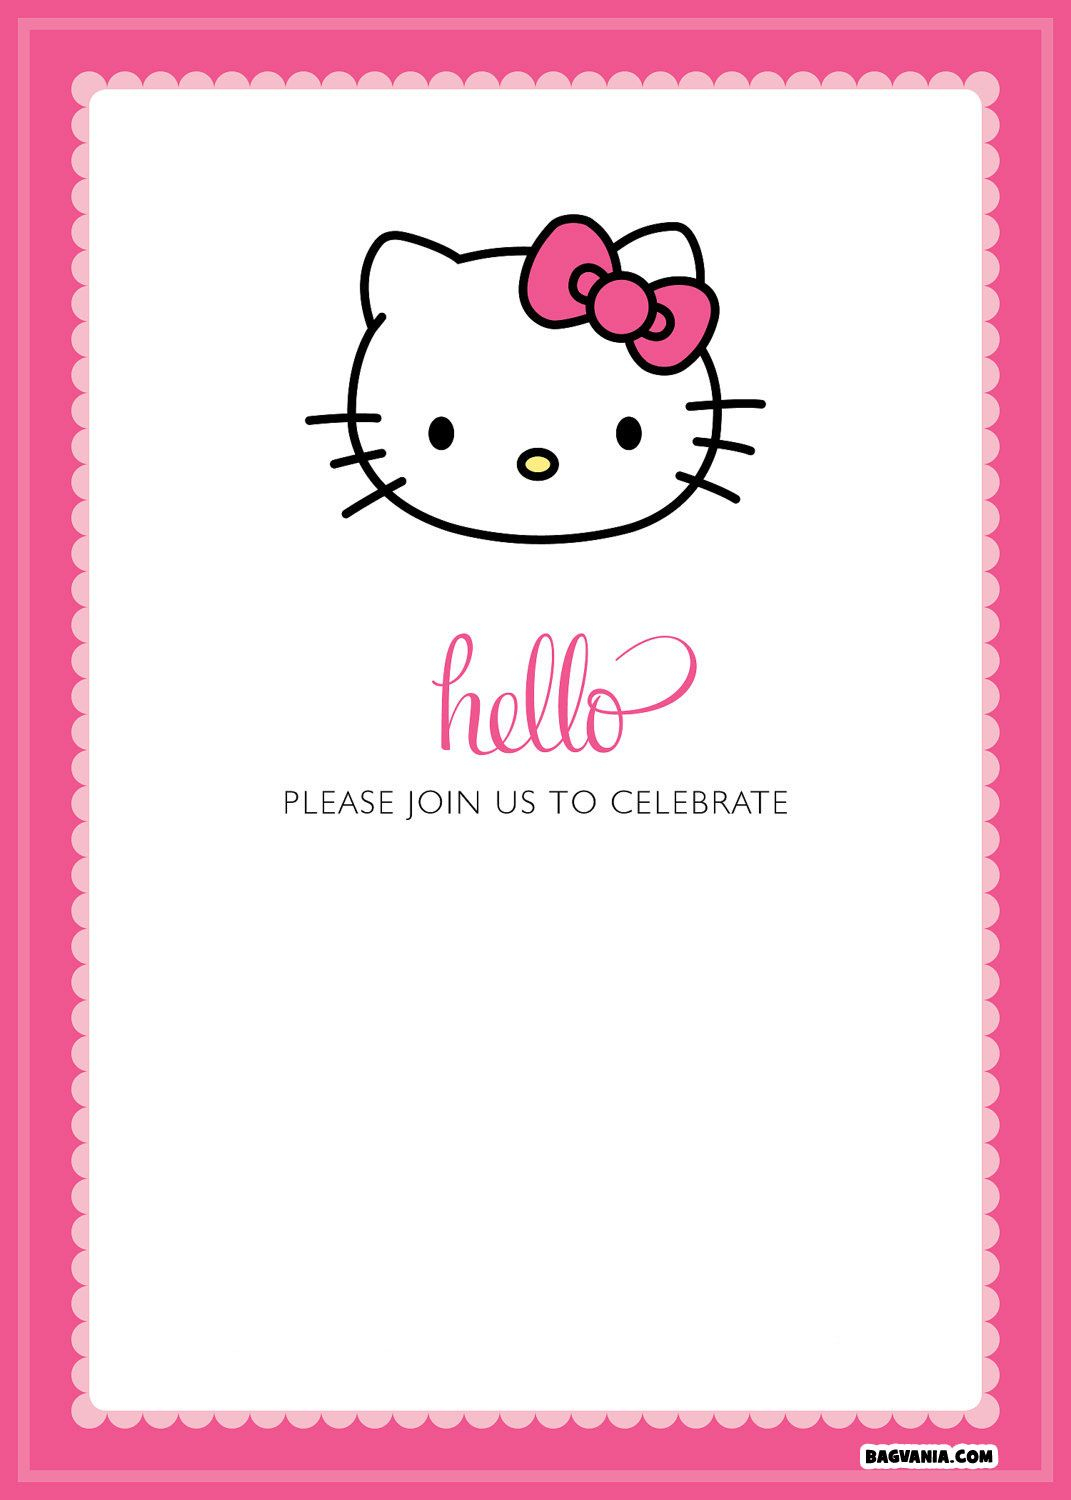 Free Printable Hello Kitty Birthday Invitations – Bagvania Free - Hello Kitty Birthday Card Printable Free